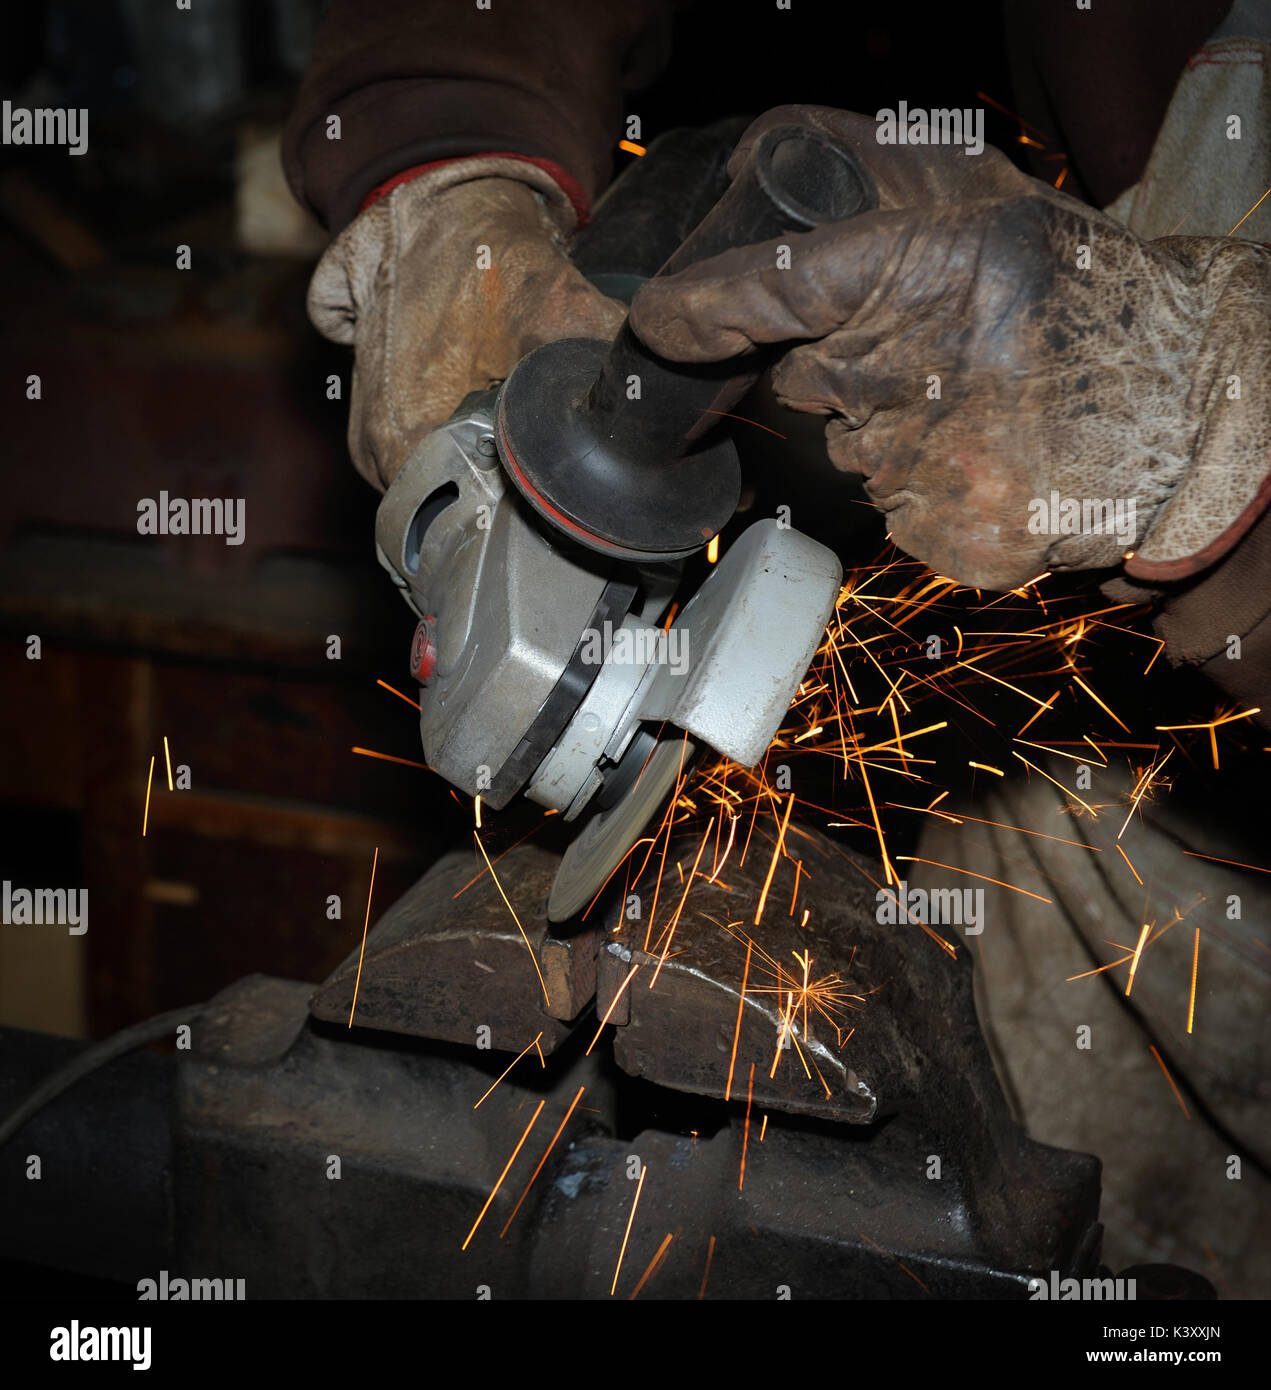 Heavy industry worker cutting steel with angle grinder - Stock Image